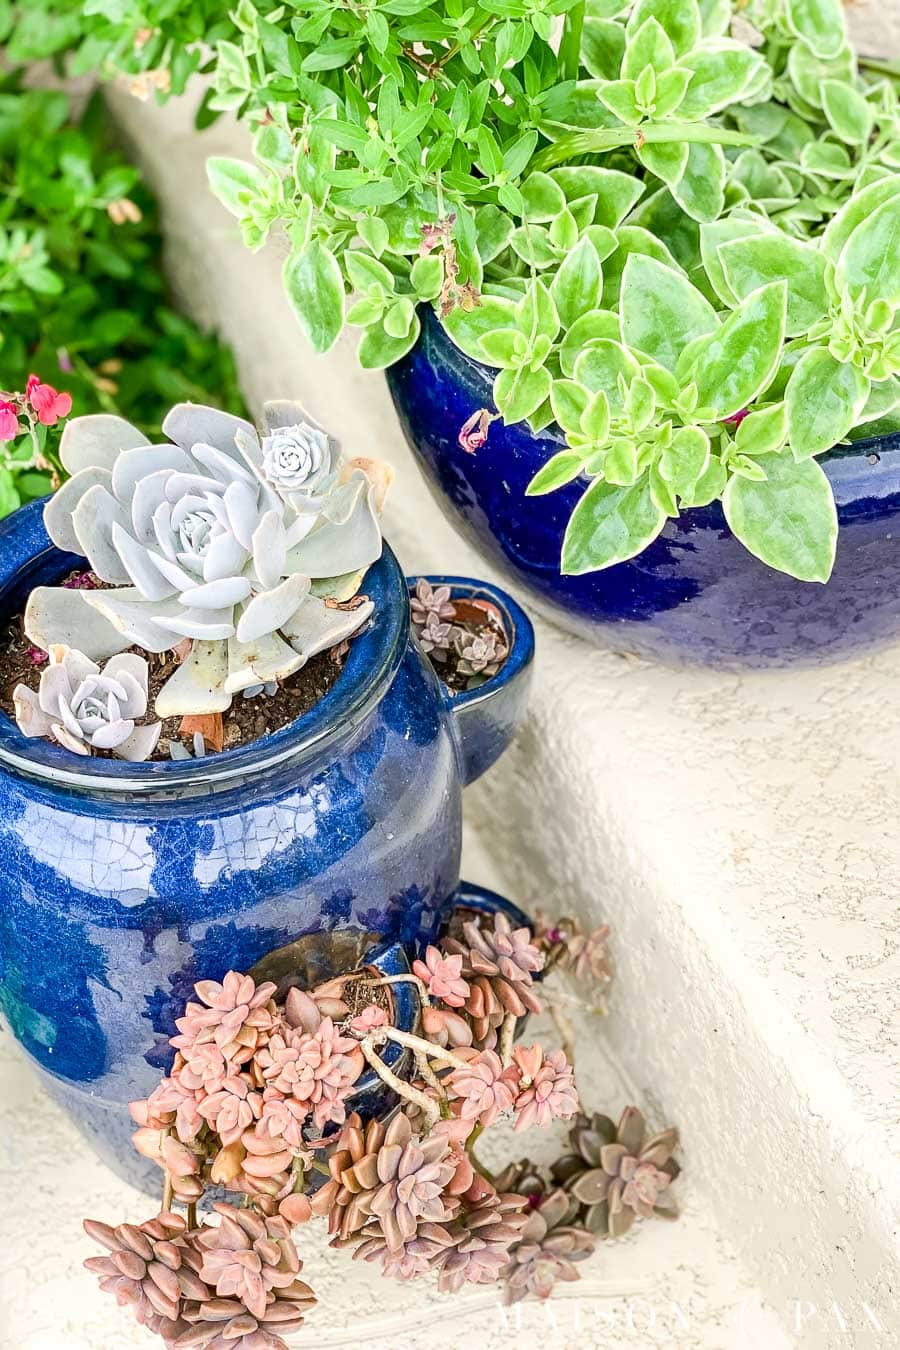 Succulent Care And Watering Maison De Pax